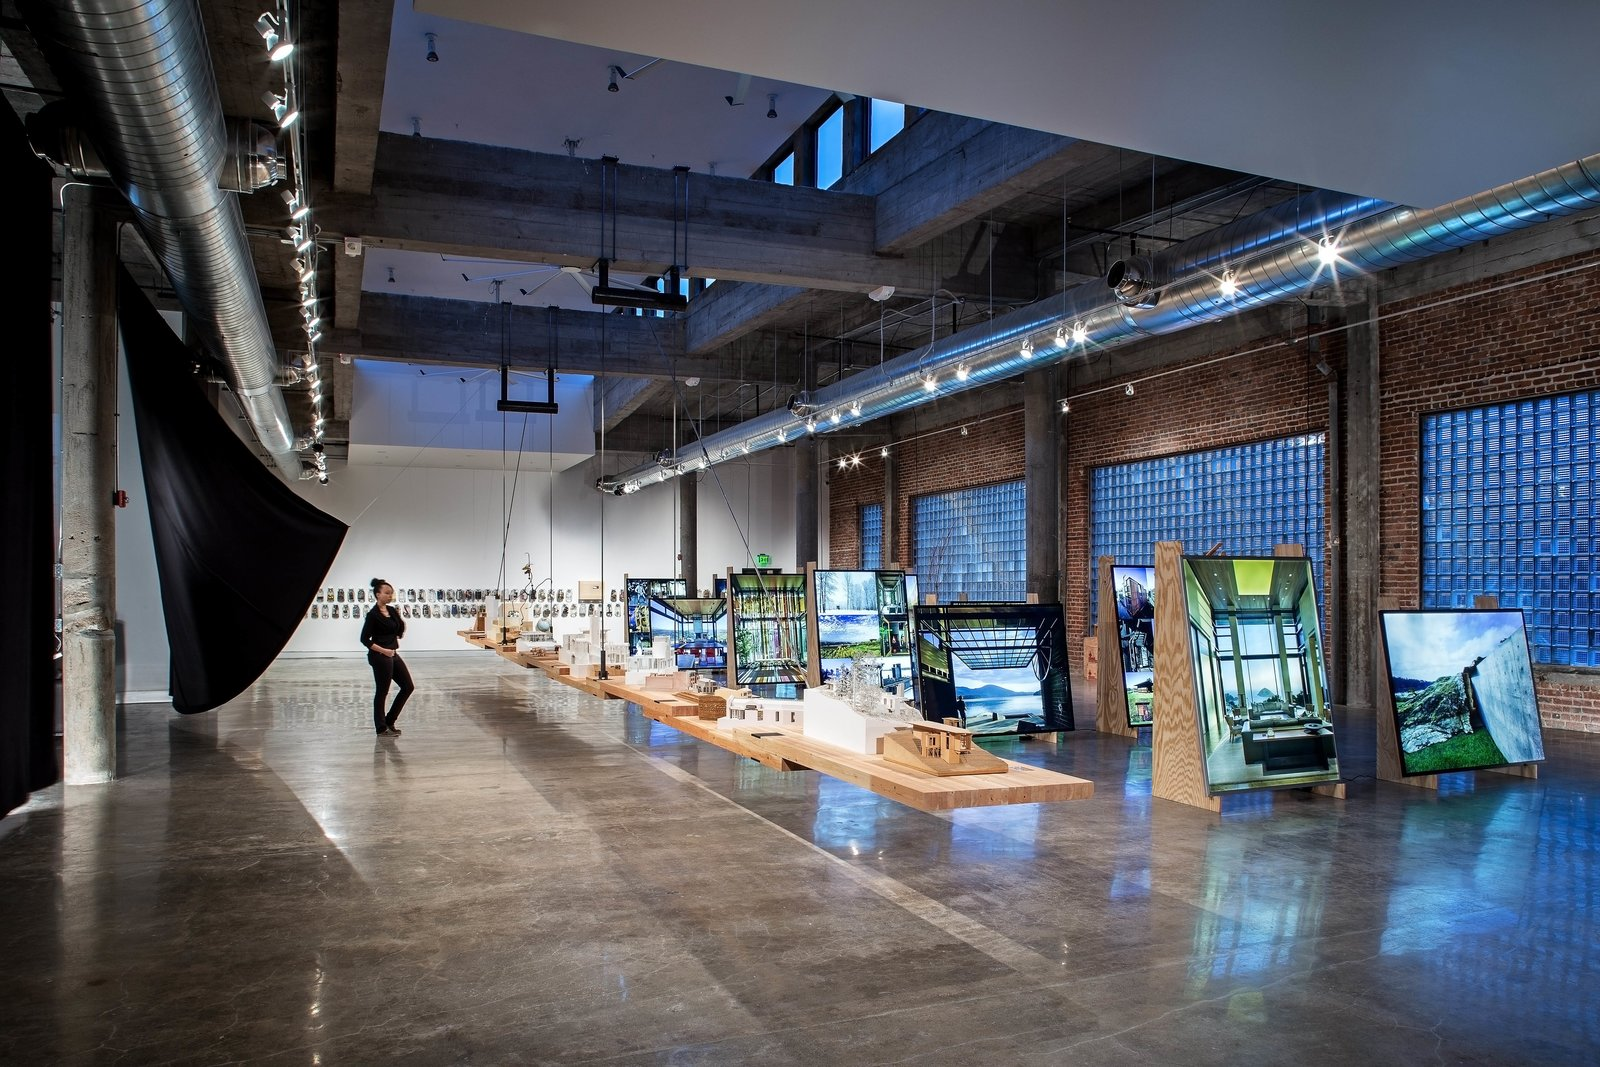 A view of the Olson Kundig retrospective exhibition at KANEKO in Omaha, Nebraska.  Photo 7 of 7 in In Omaha, an Exhibit Celebrates 50 Years of Olson Kundig